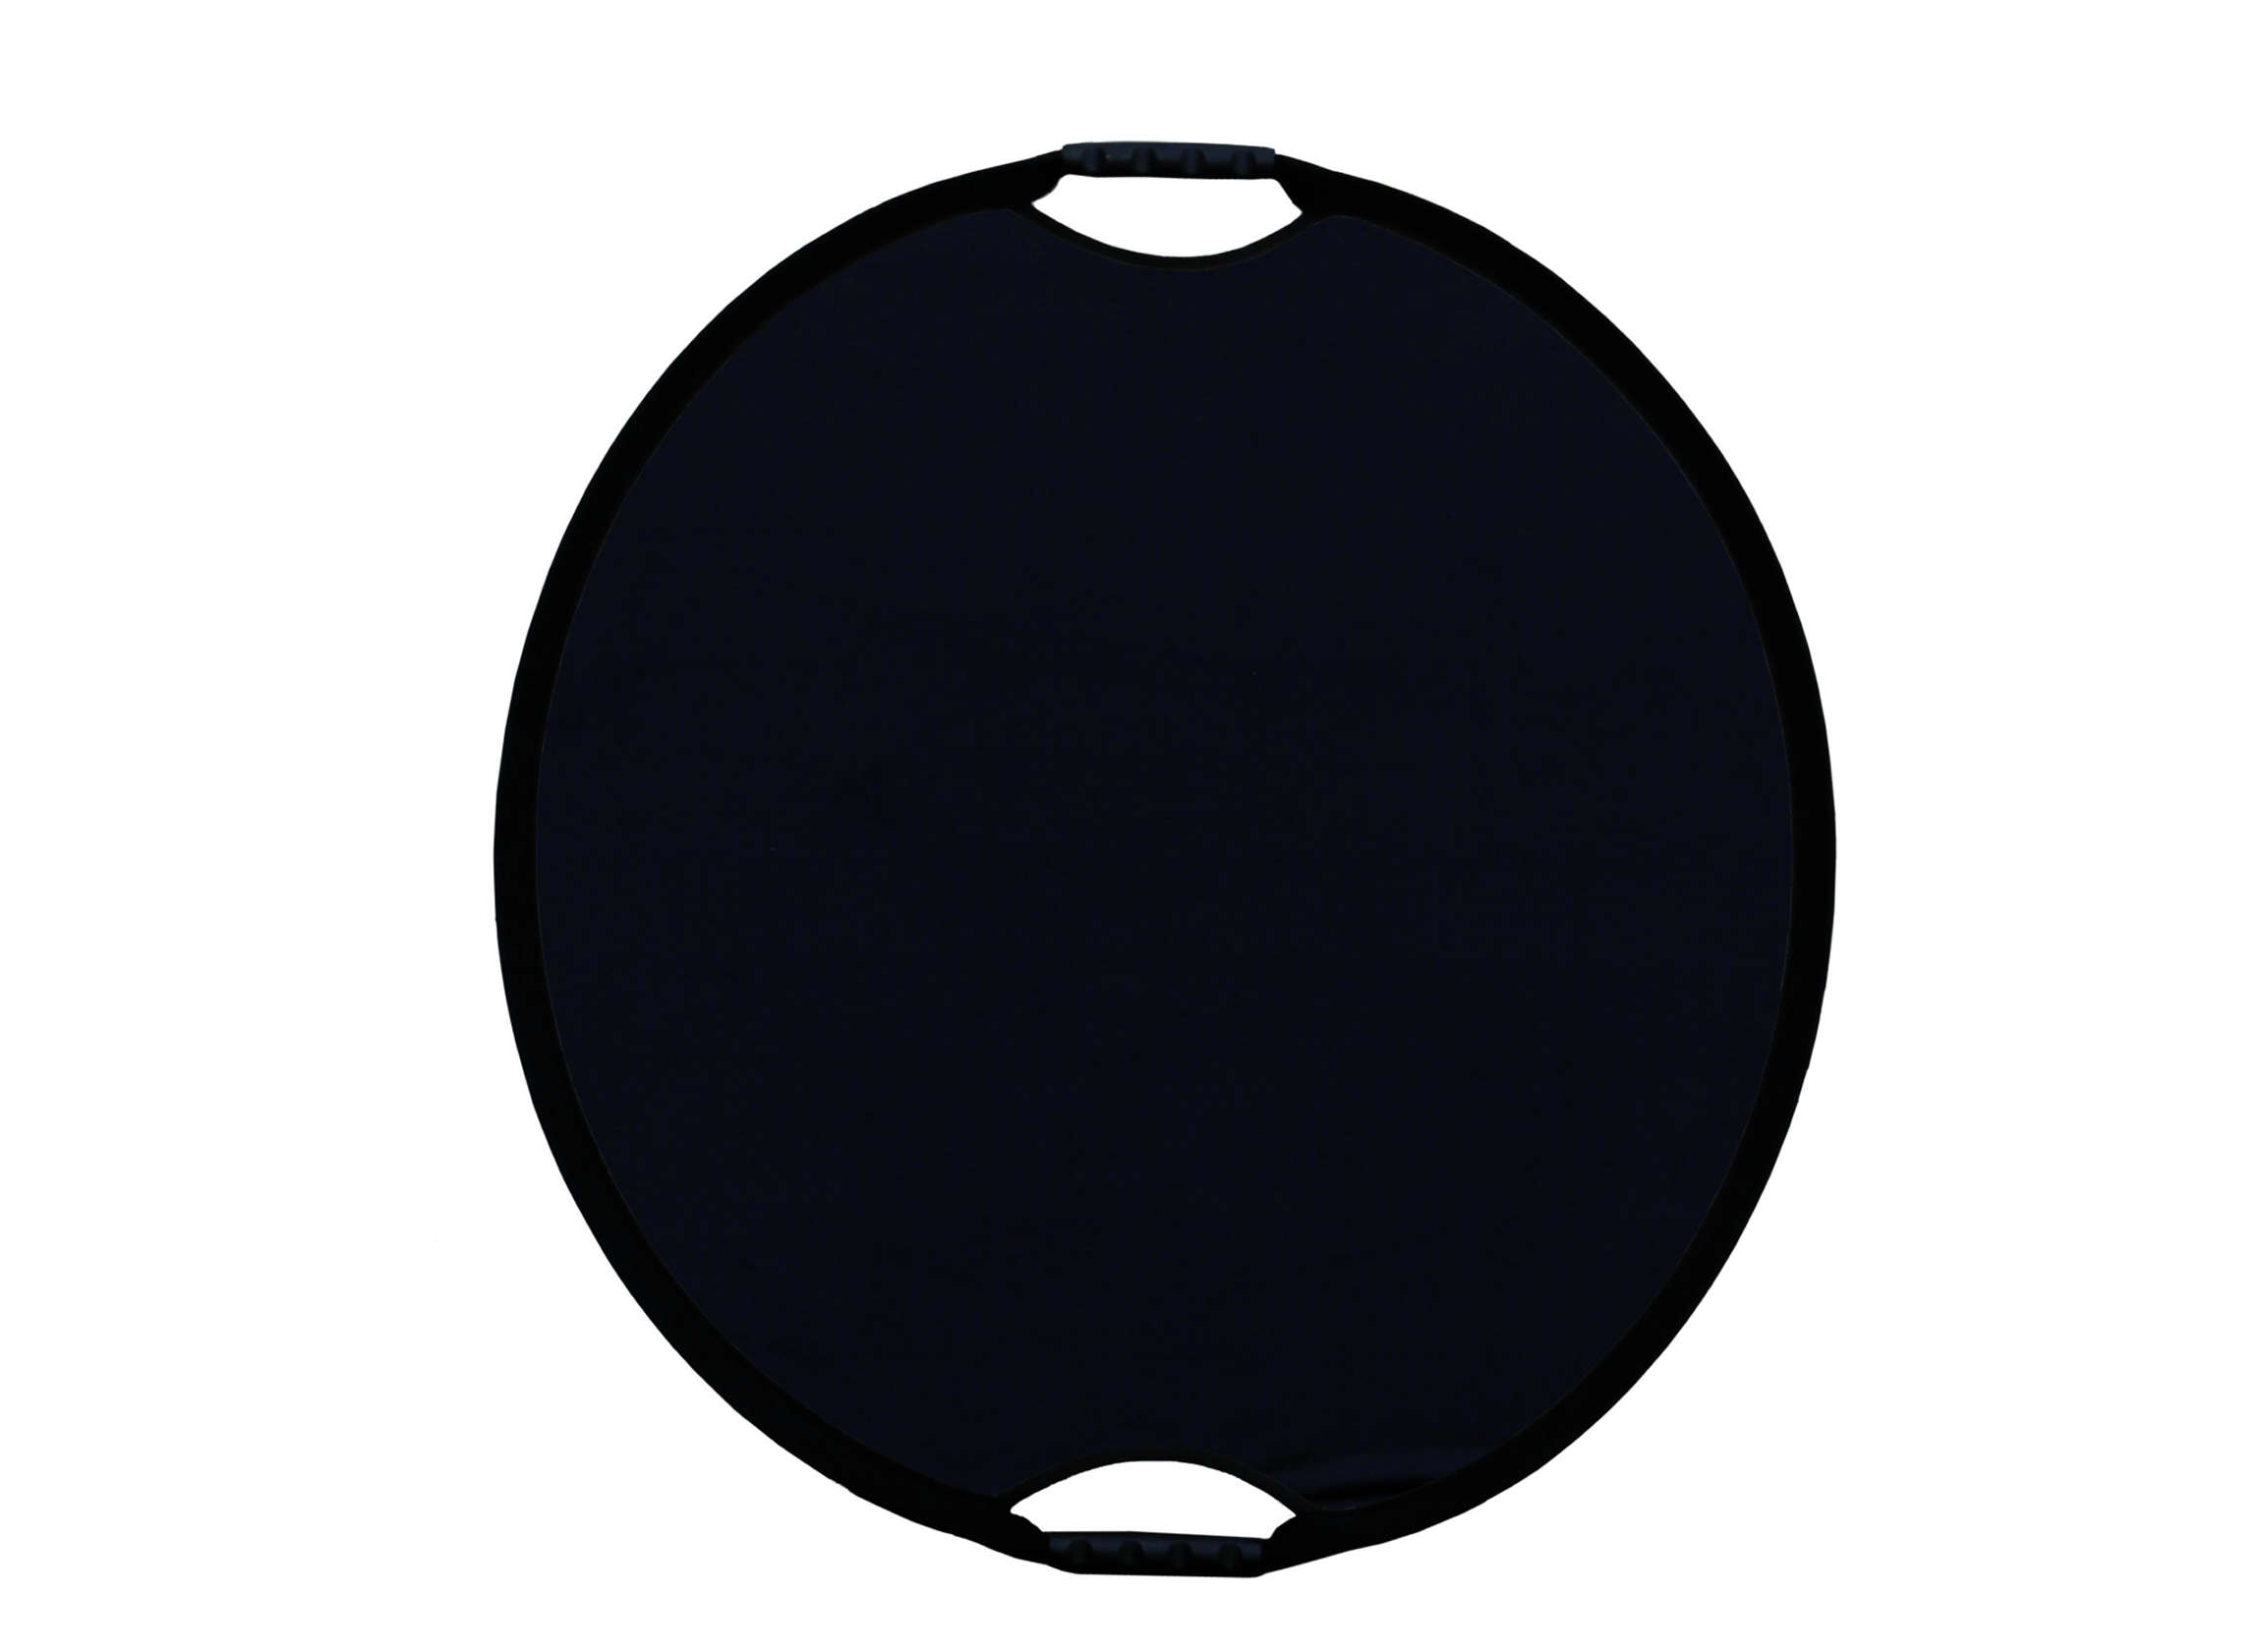 SM SUN MOVER - REFLECT. Black hole Diam. 90cm PLIABLE